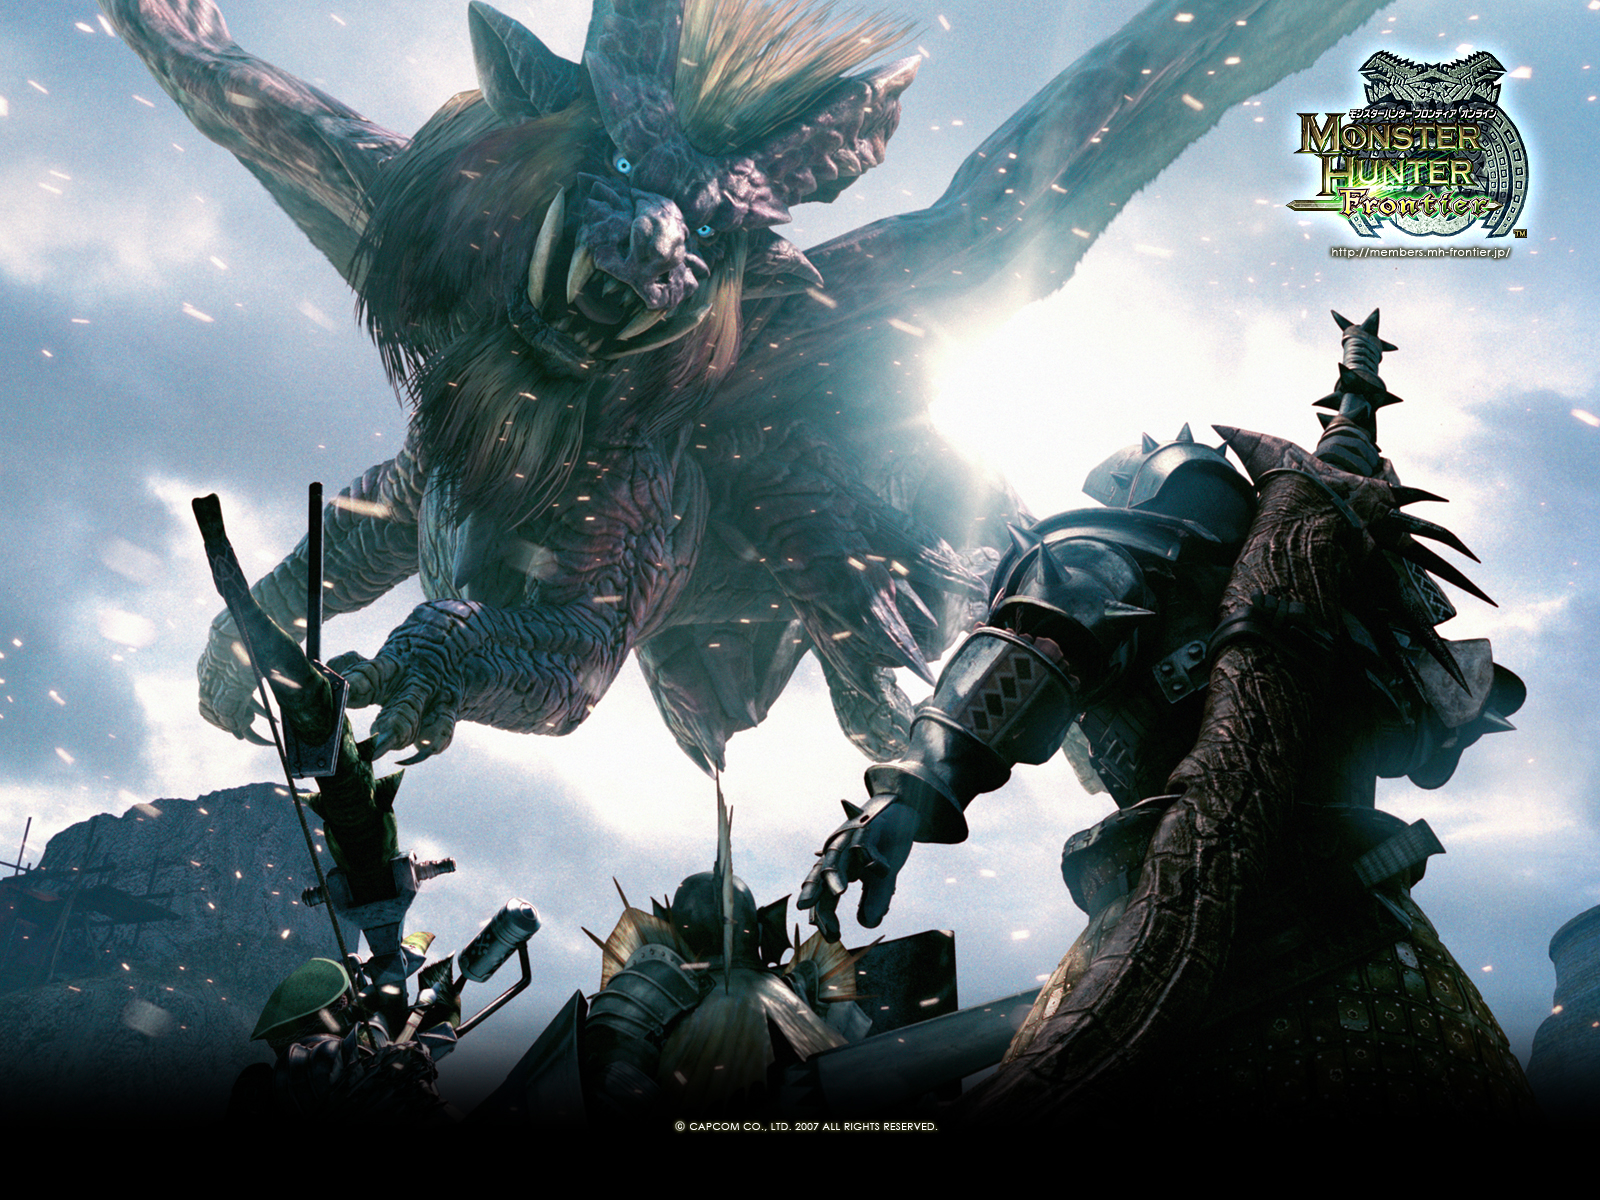 Monster Hunter 4 rumored to be at the Tokyo Game Show 2009